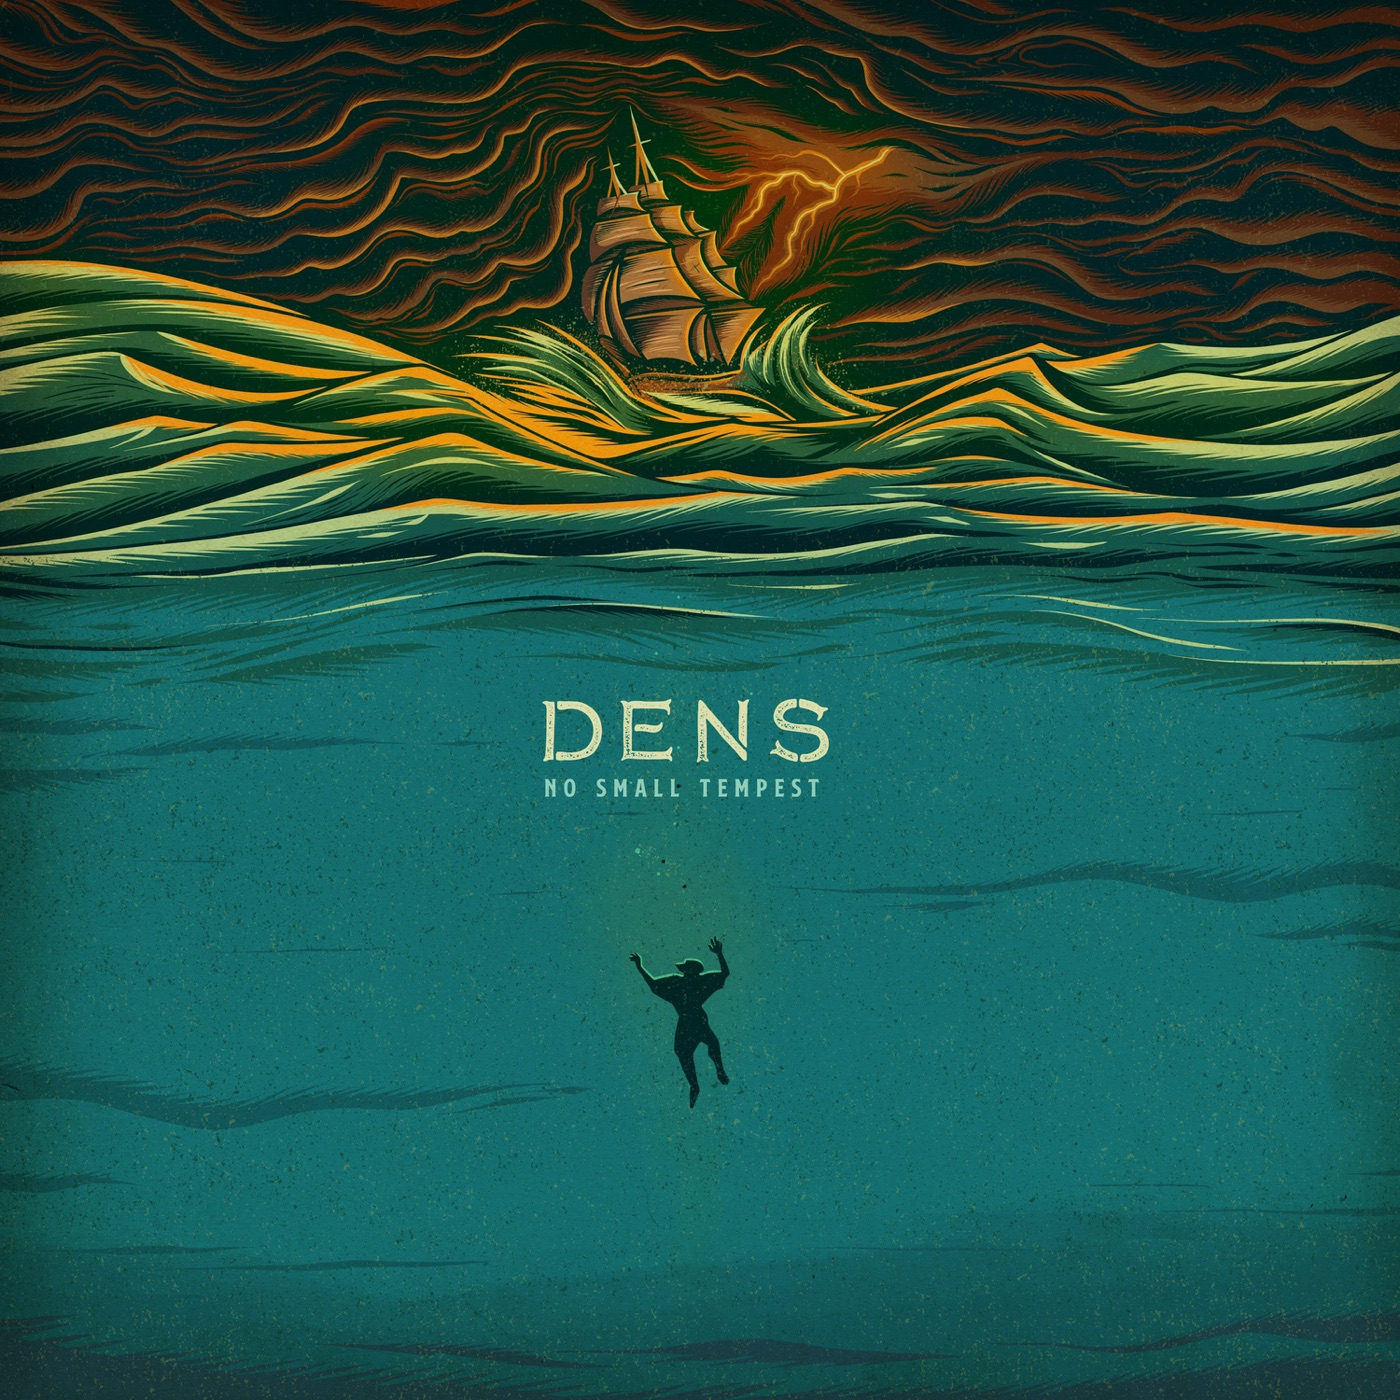 Dens - Deadrise [Single] (2018)